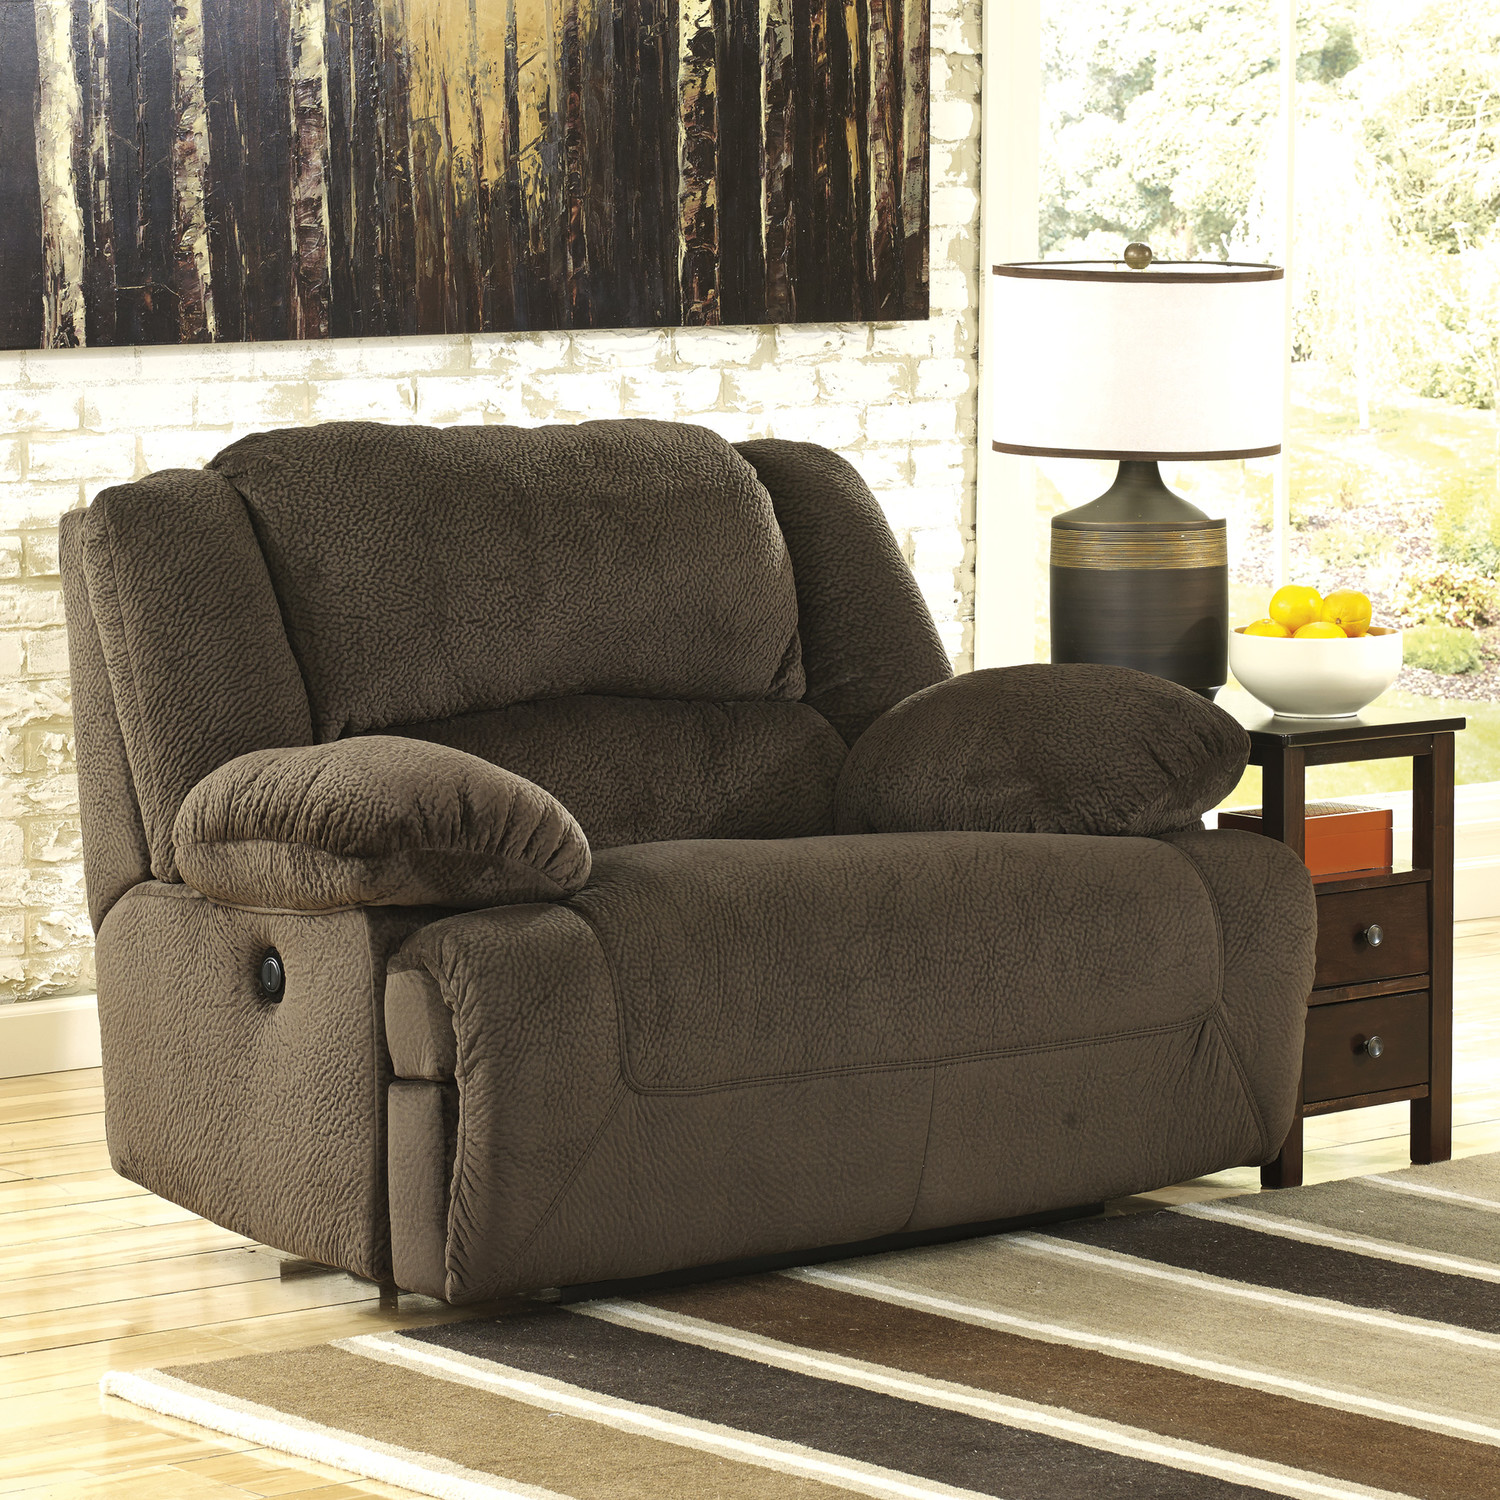 Oversized Sofa Chair Oversized Reclining Sofa Damacio Oversized Recliner Ashley